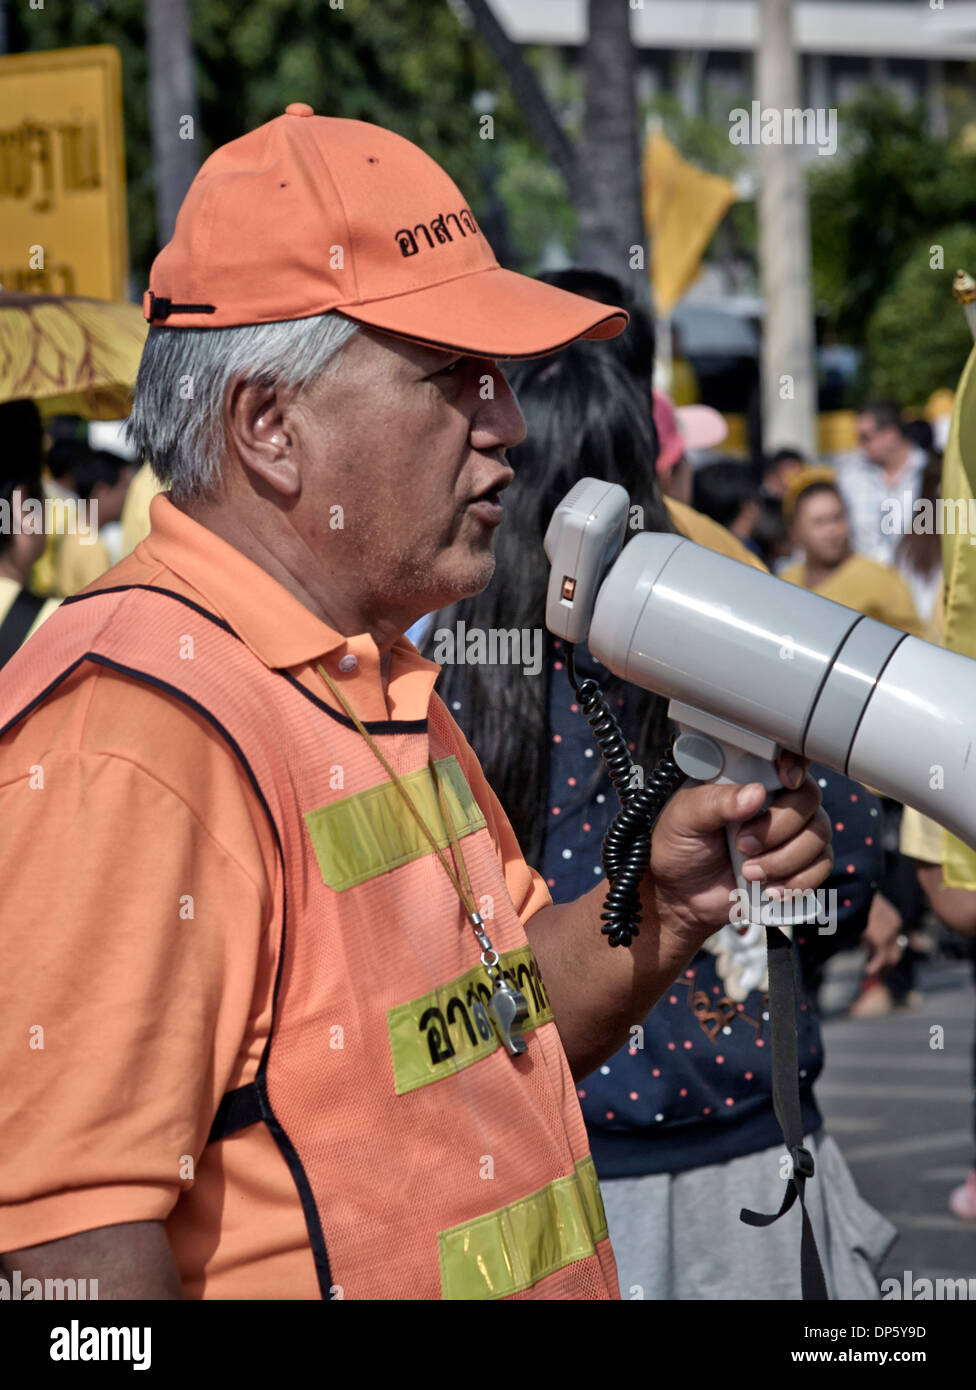 Man using a bullhorn to address a crowd - Stock Image